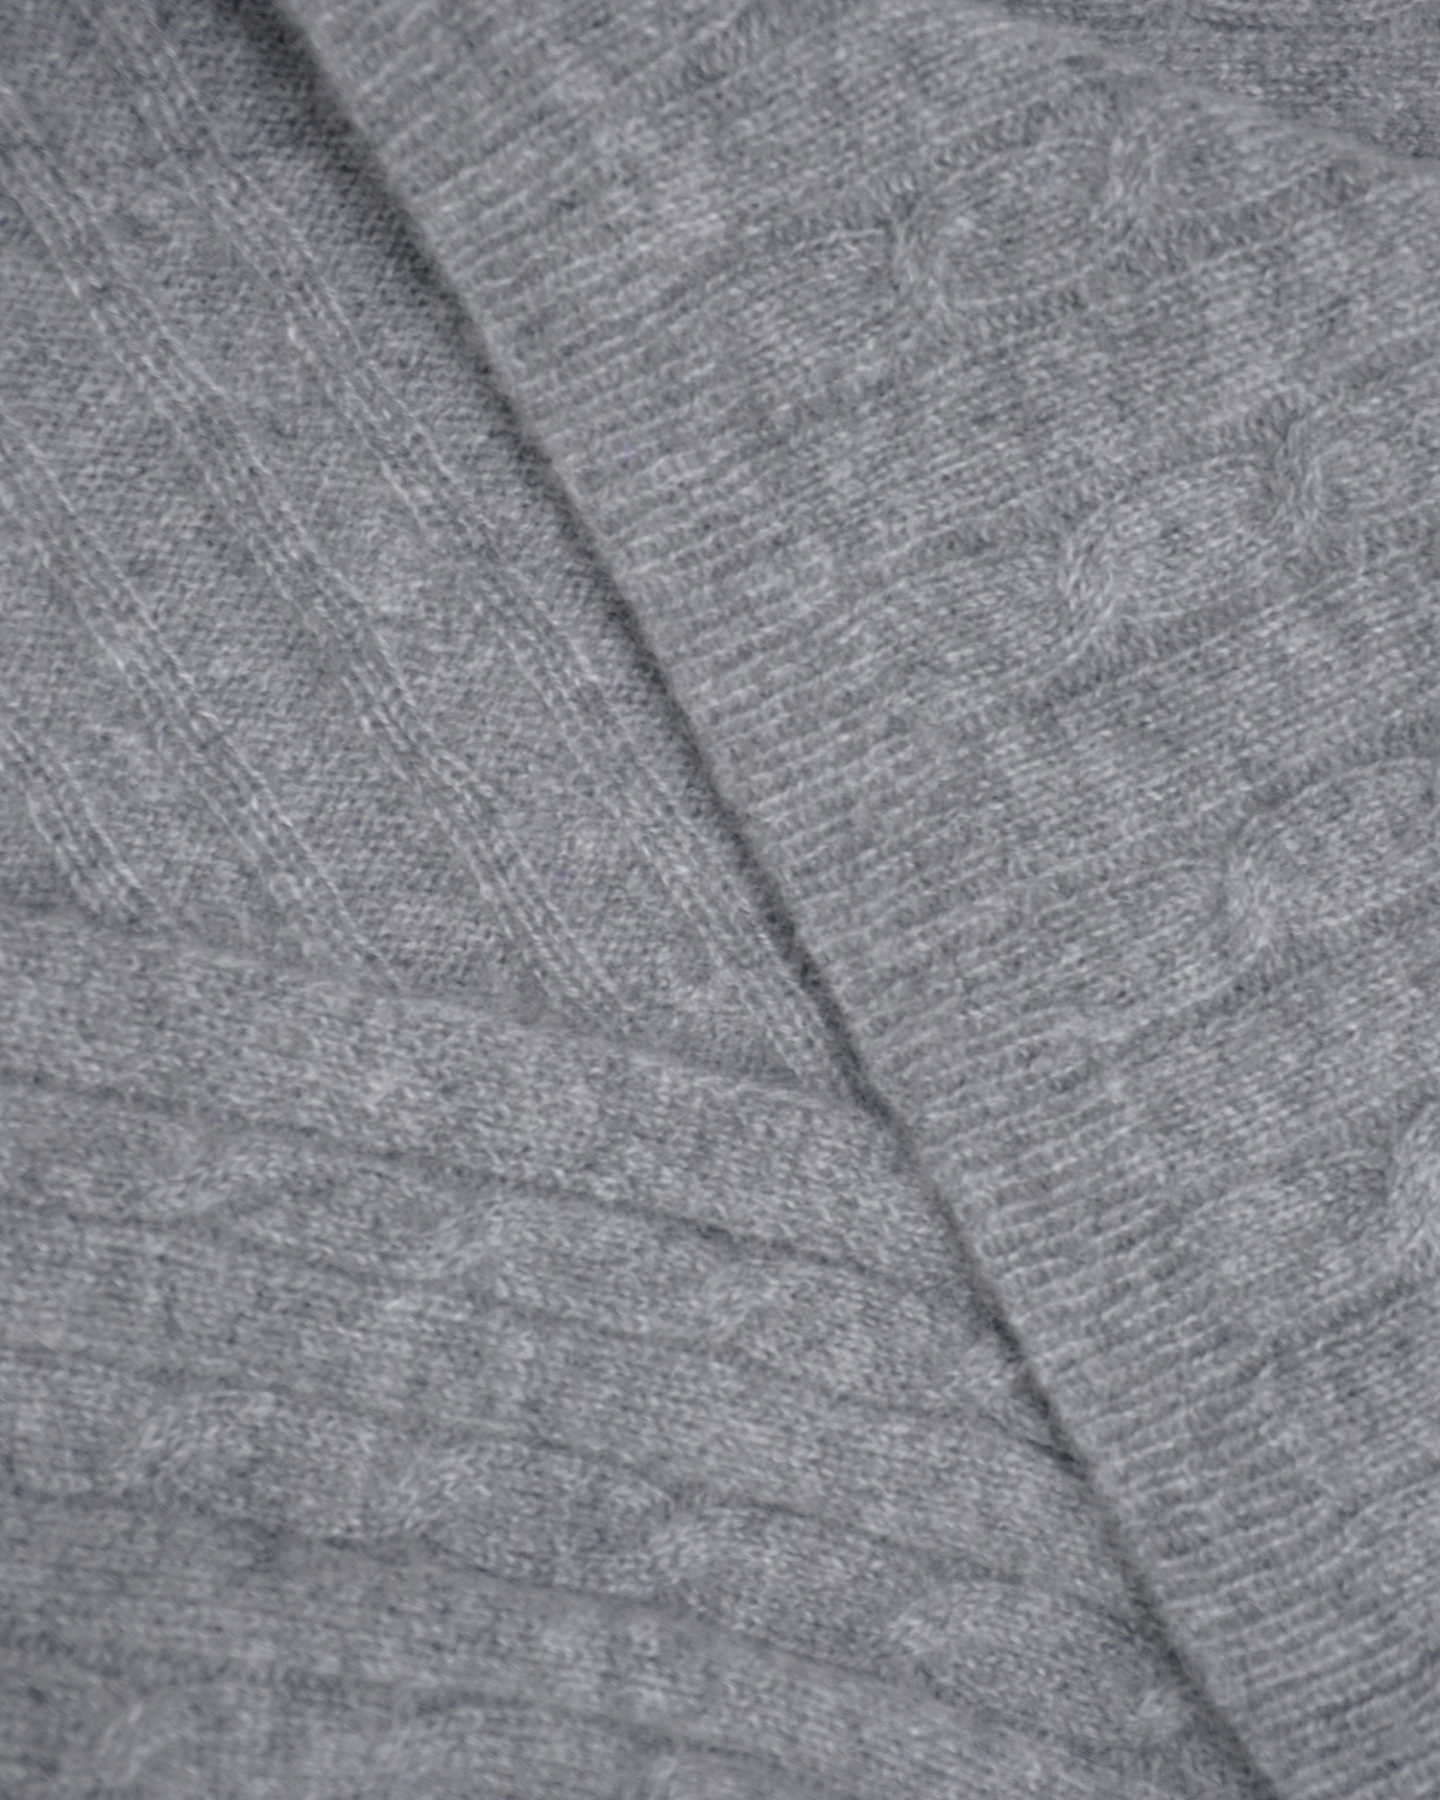 grey cashmere baby blanket up close